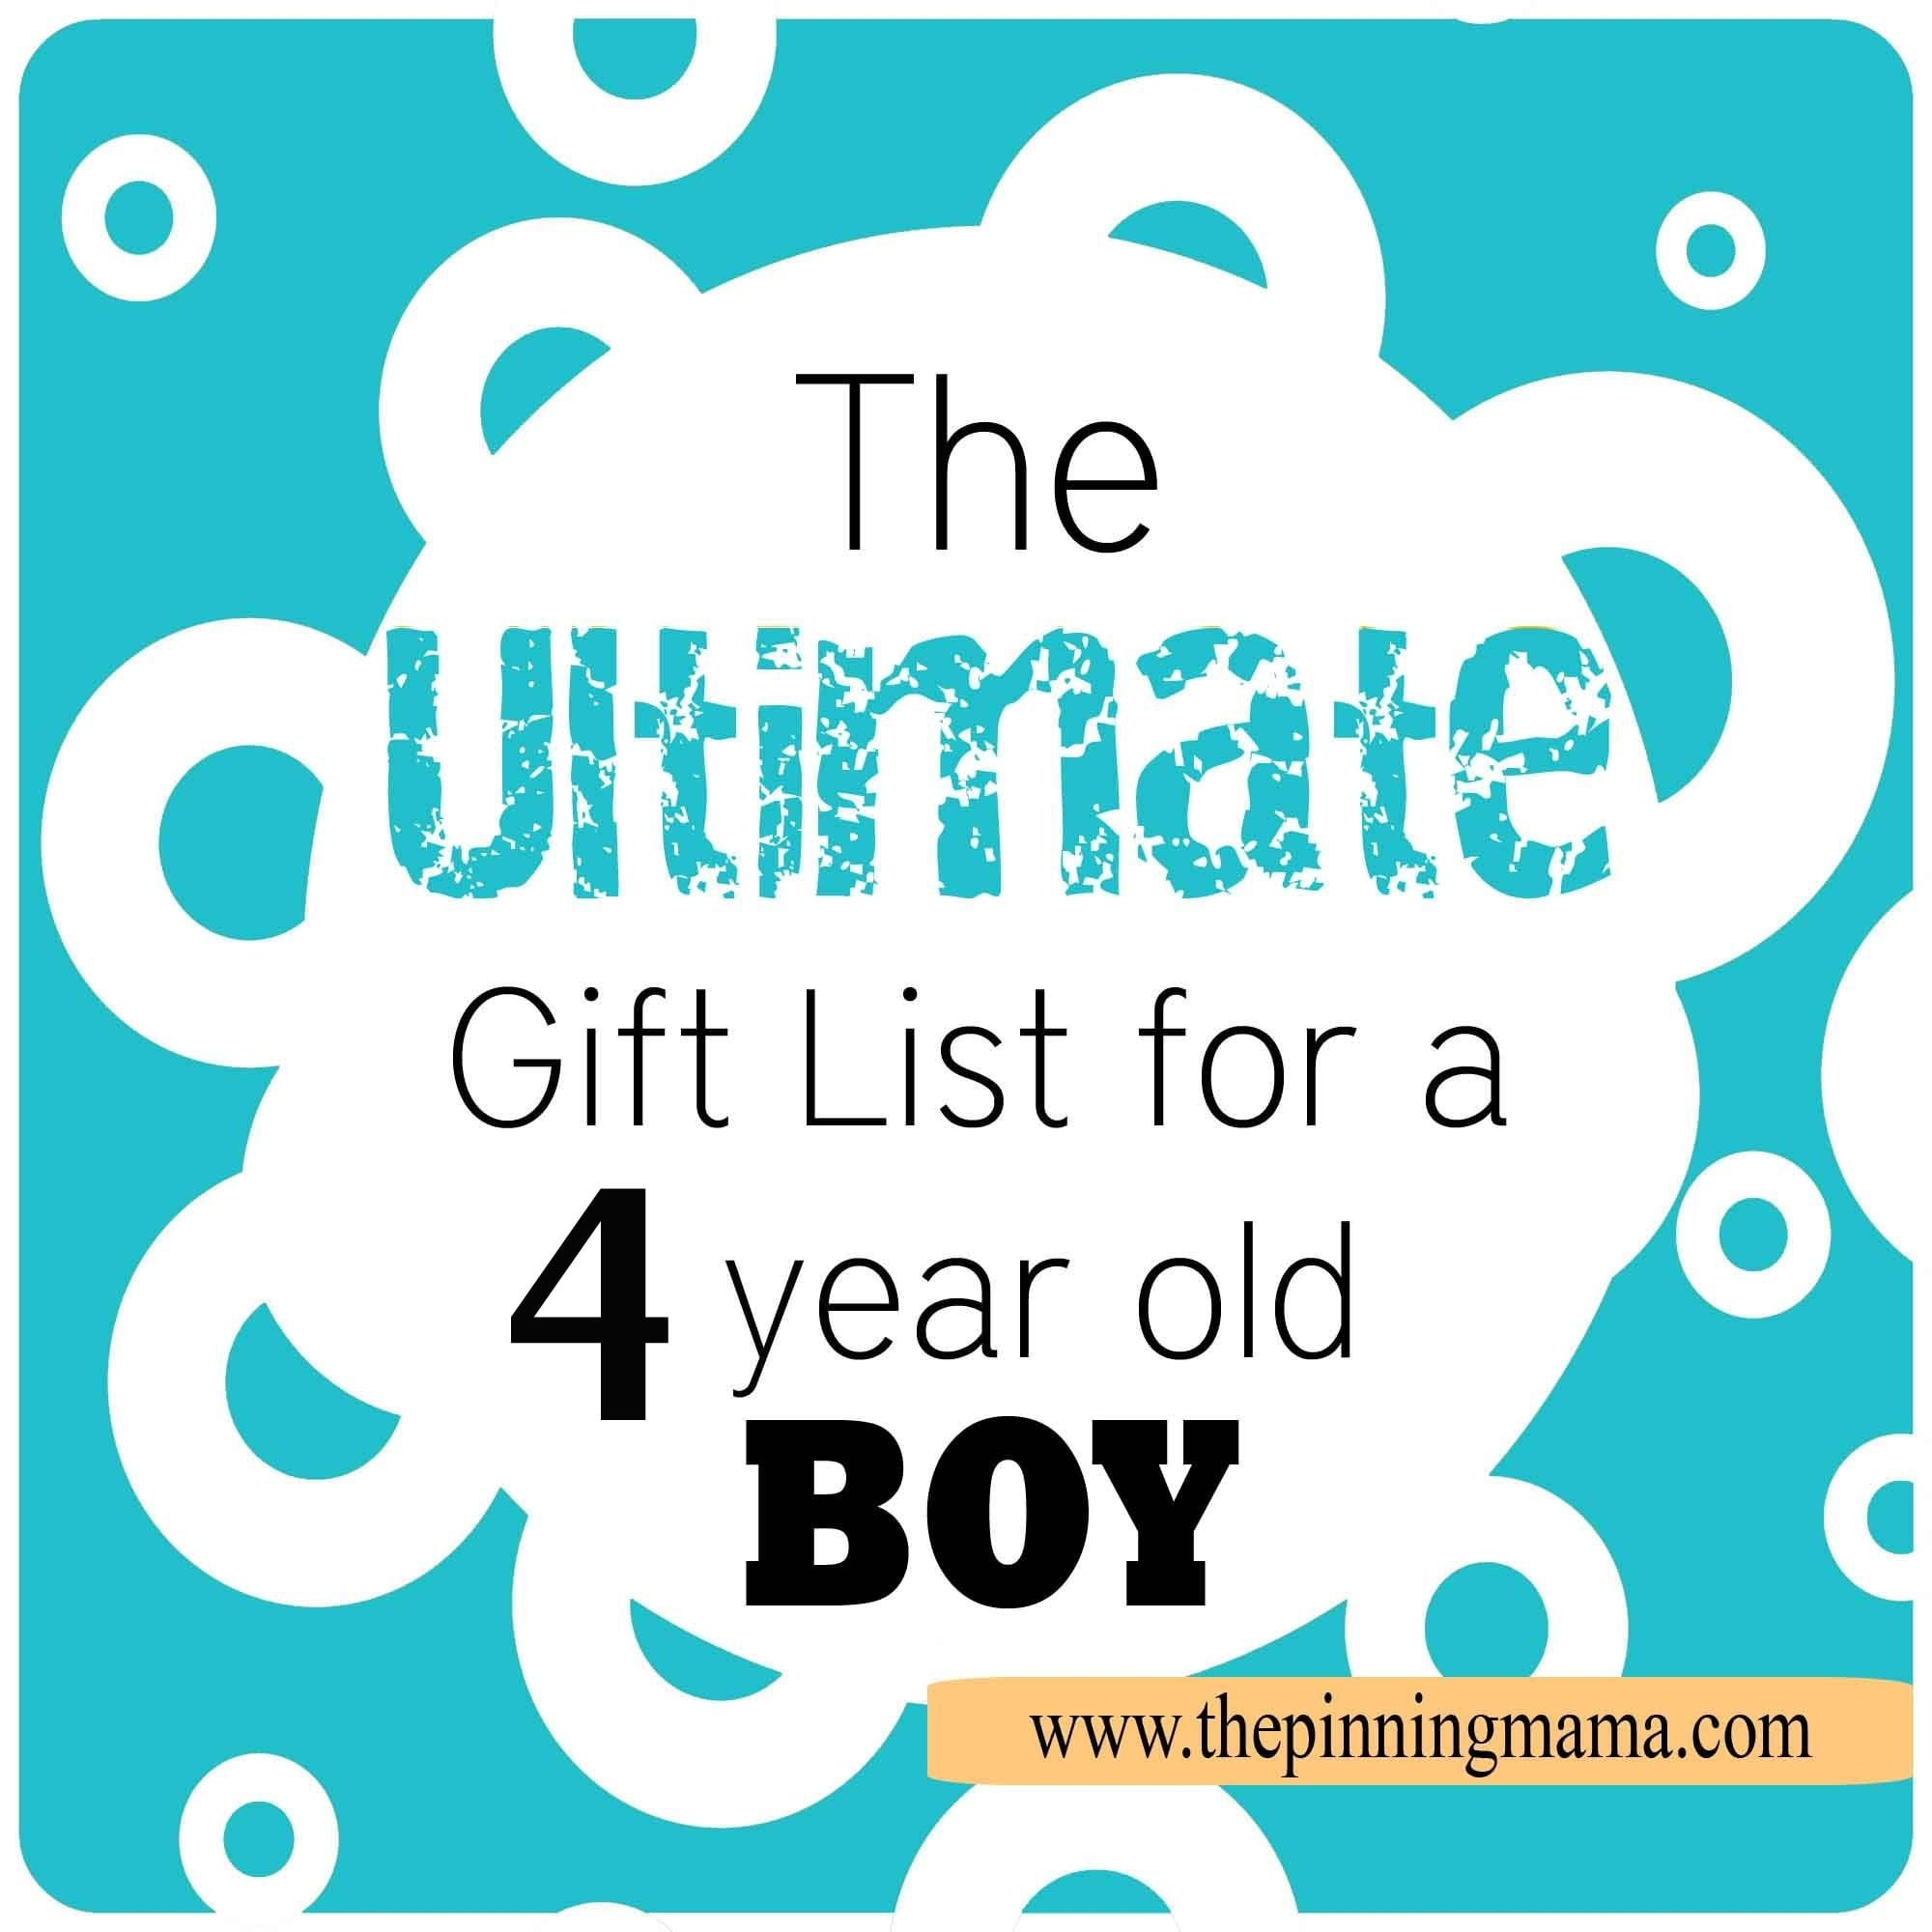 the best list of gift ideas for a 4 year old boy! • the pinning mama